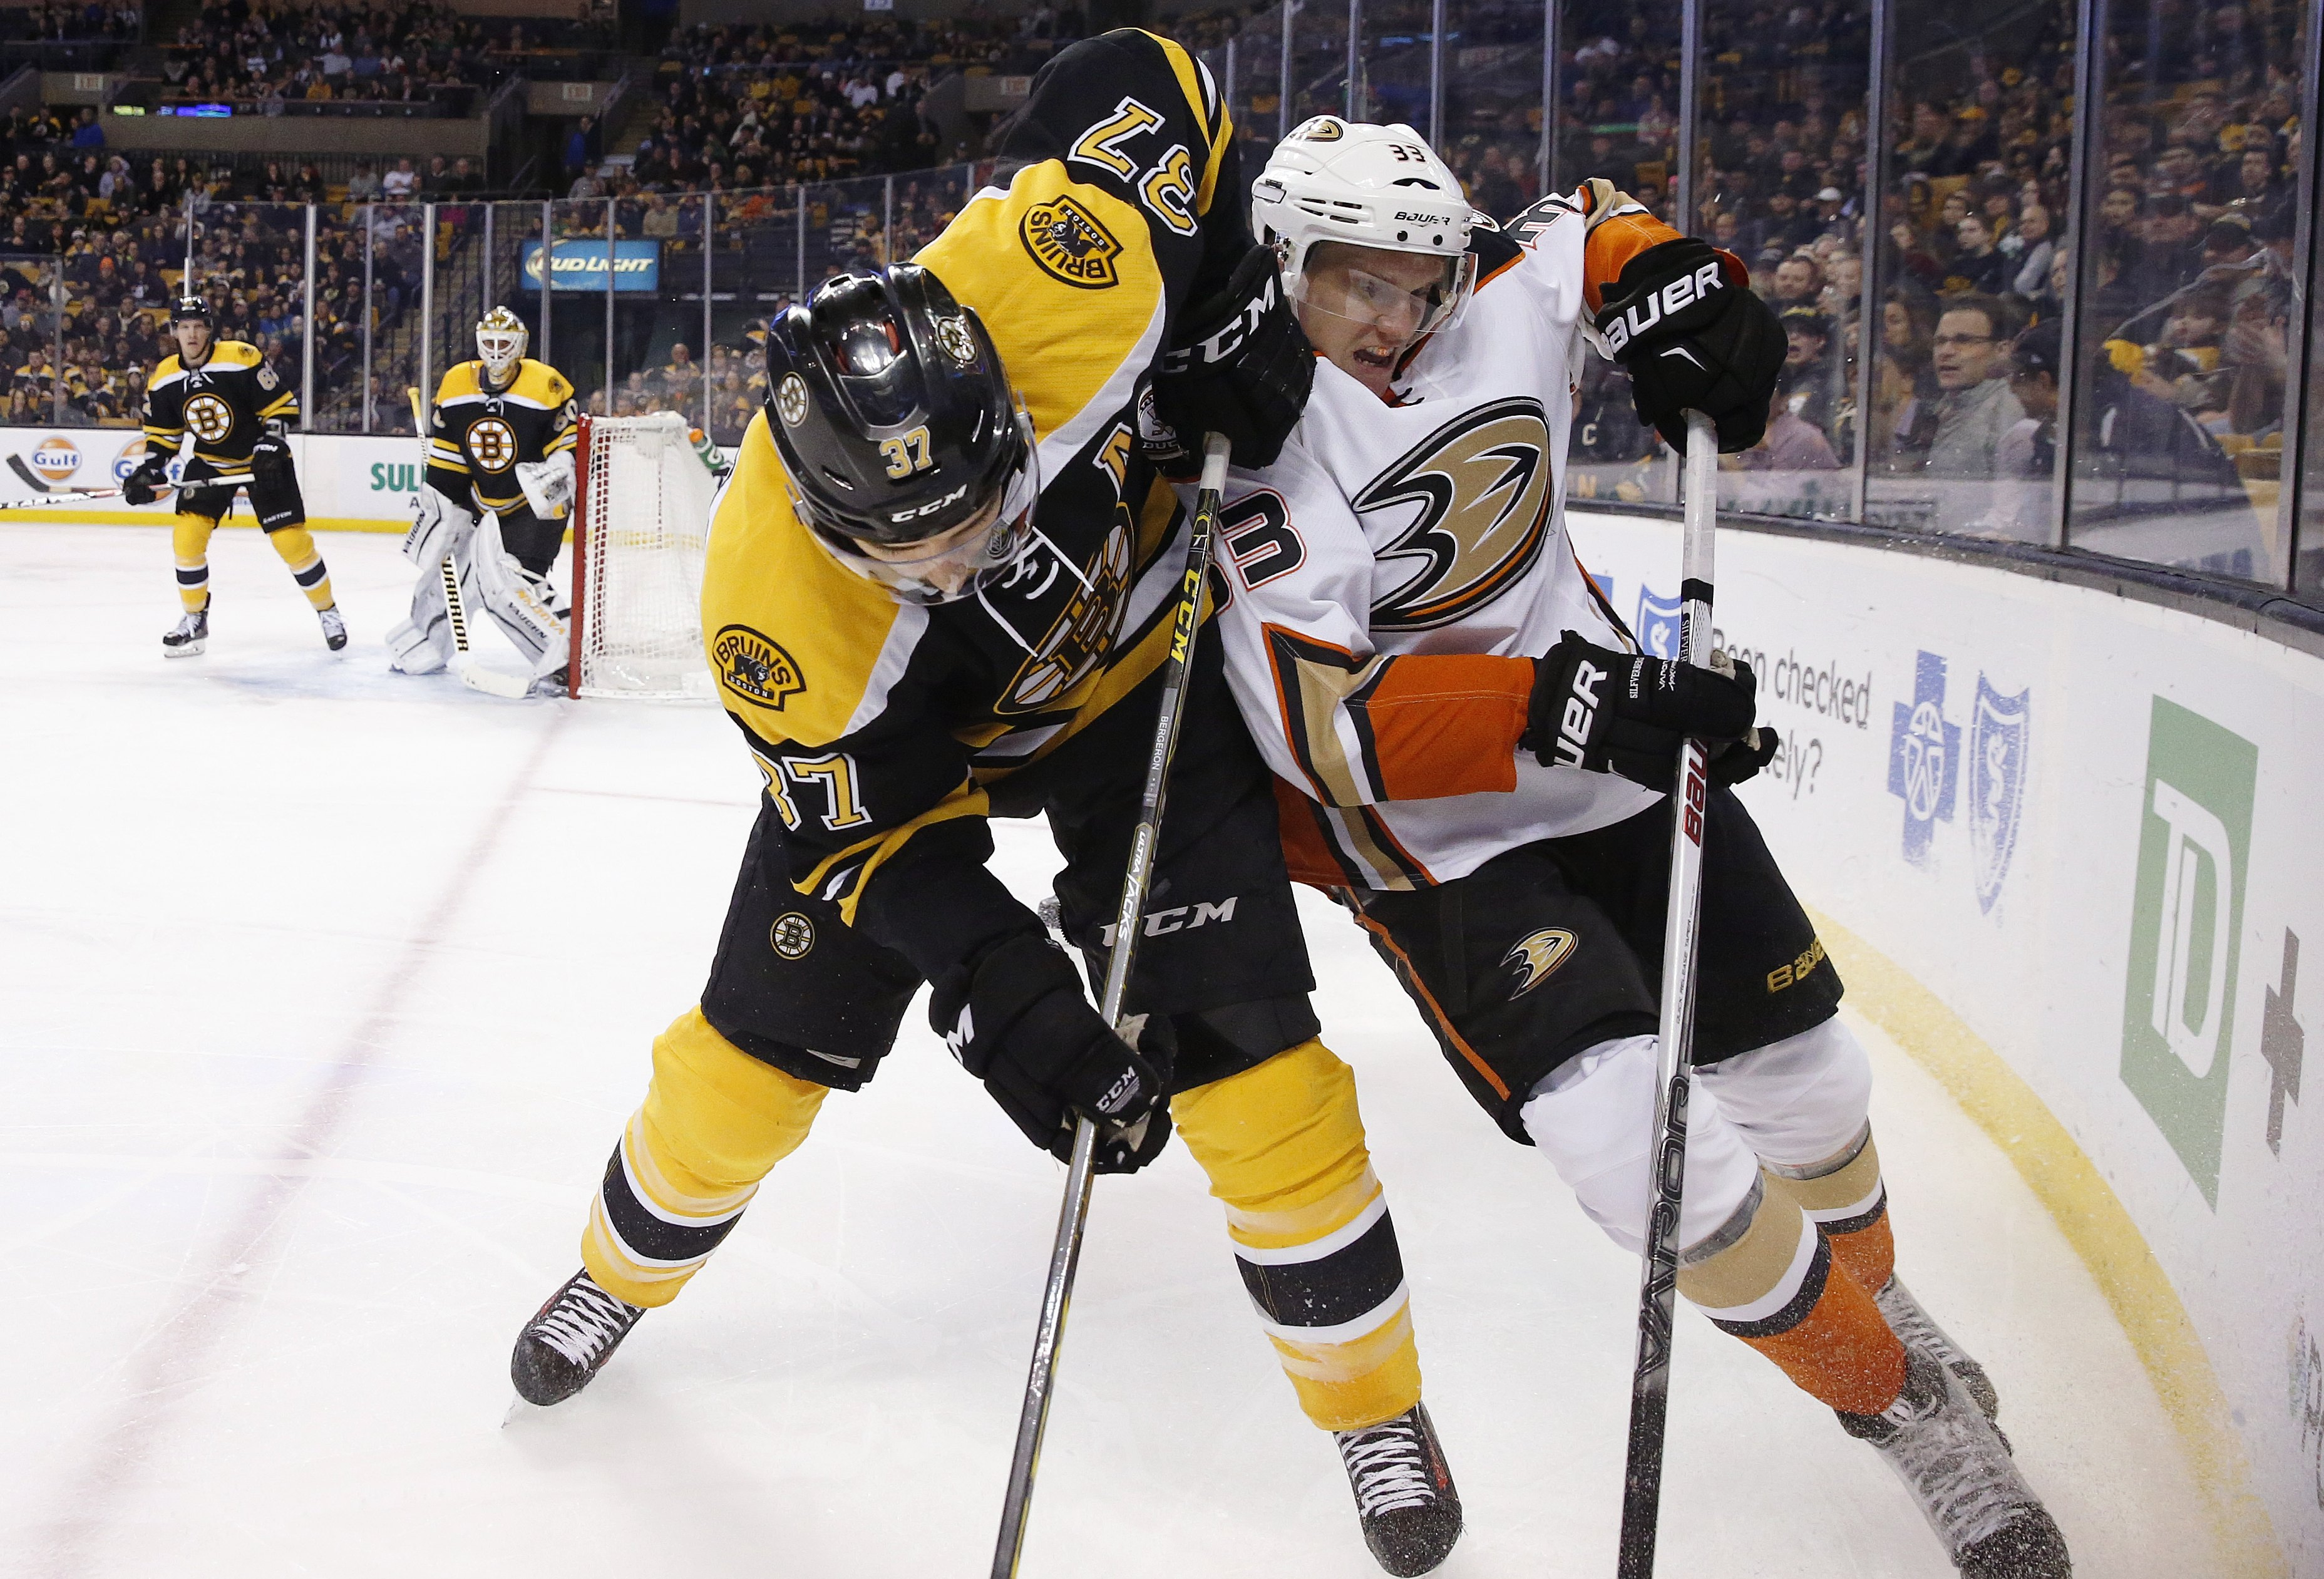 Boston Bruins' Patrice Bergeron (37) and Anaheim Ducks' Jakob Silfverberg (33) battle for the puck during the first period of an NHL hockey game in Boston, Tuesday, Jan. 26, 2016. (AP Photo/Michael Dwyer)